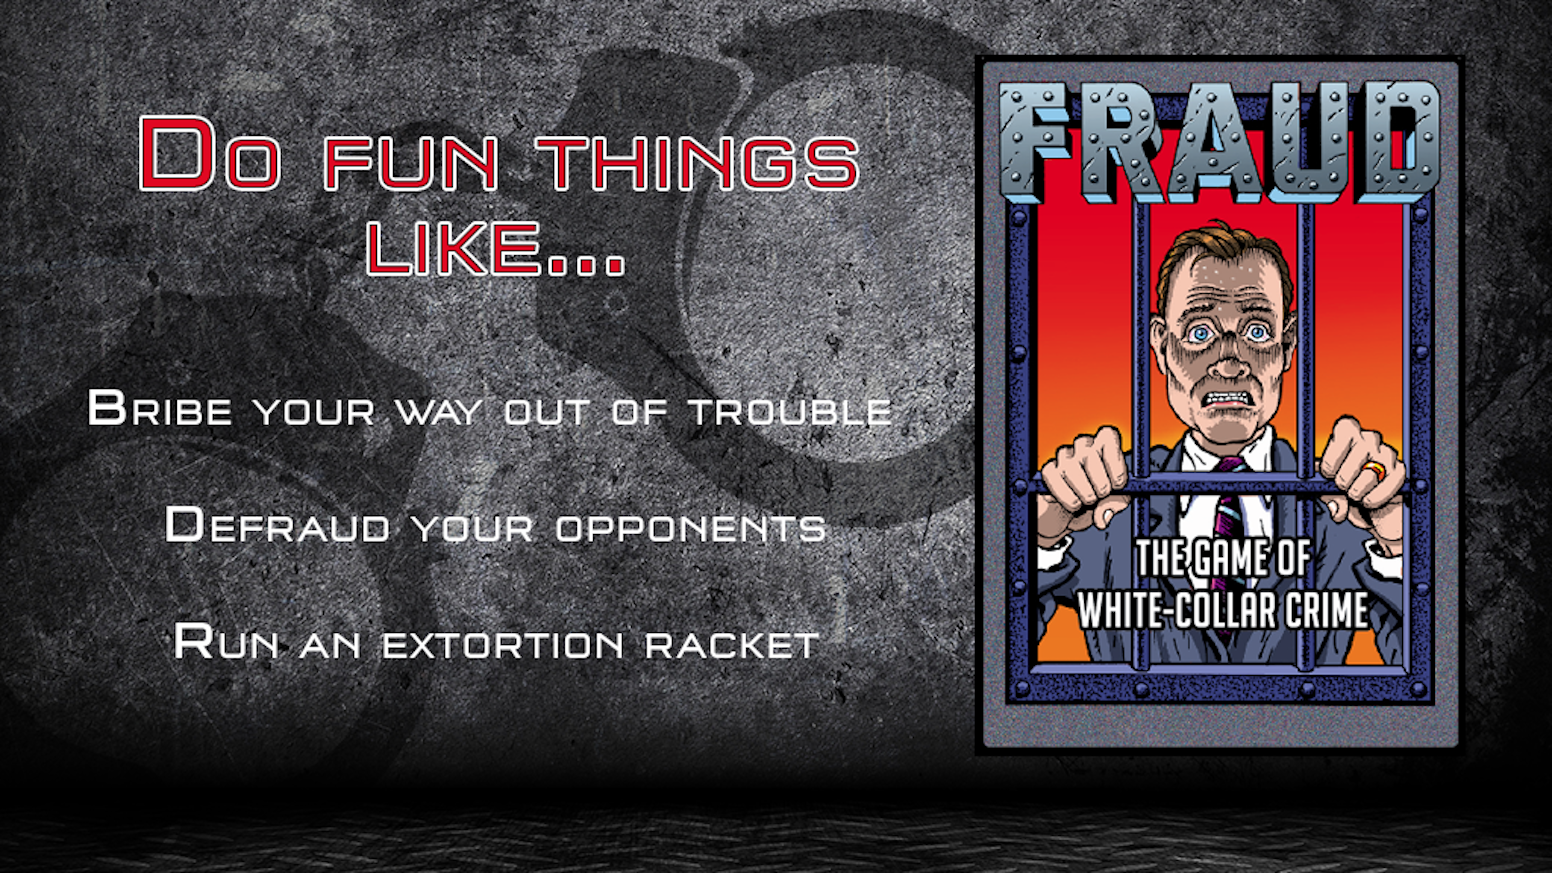 Card game that satirizes corporate greed and white-collar criminals. If you are into extortion, bribery and scams, you'll love Fraud.